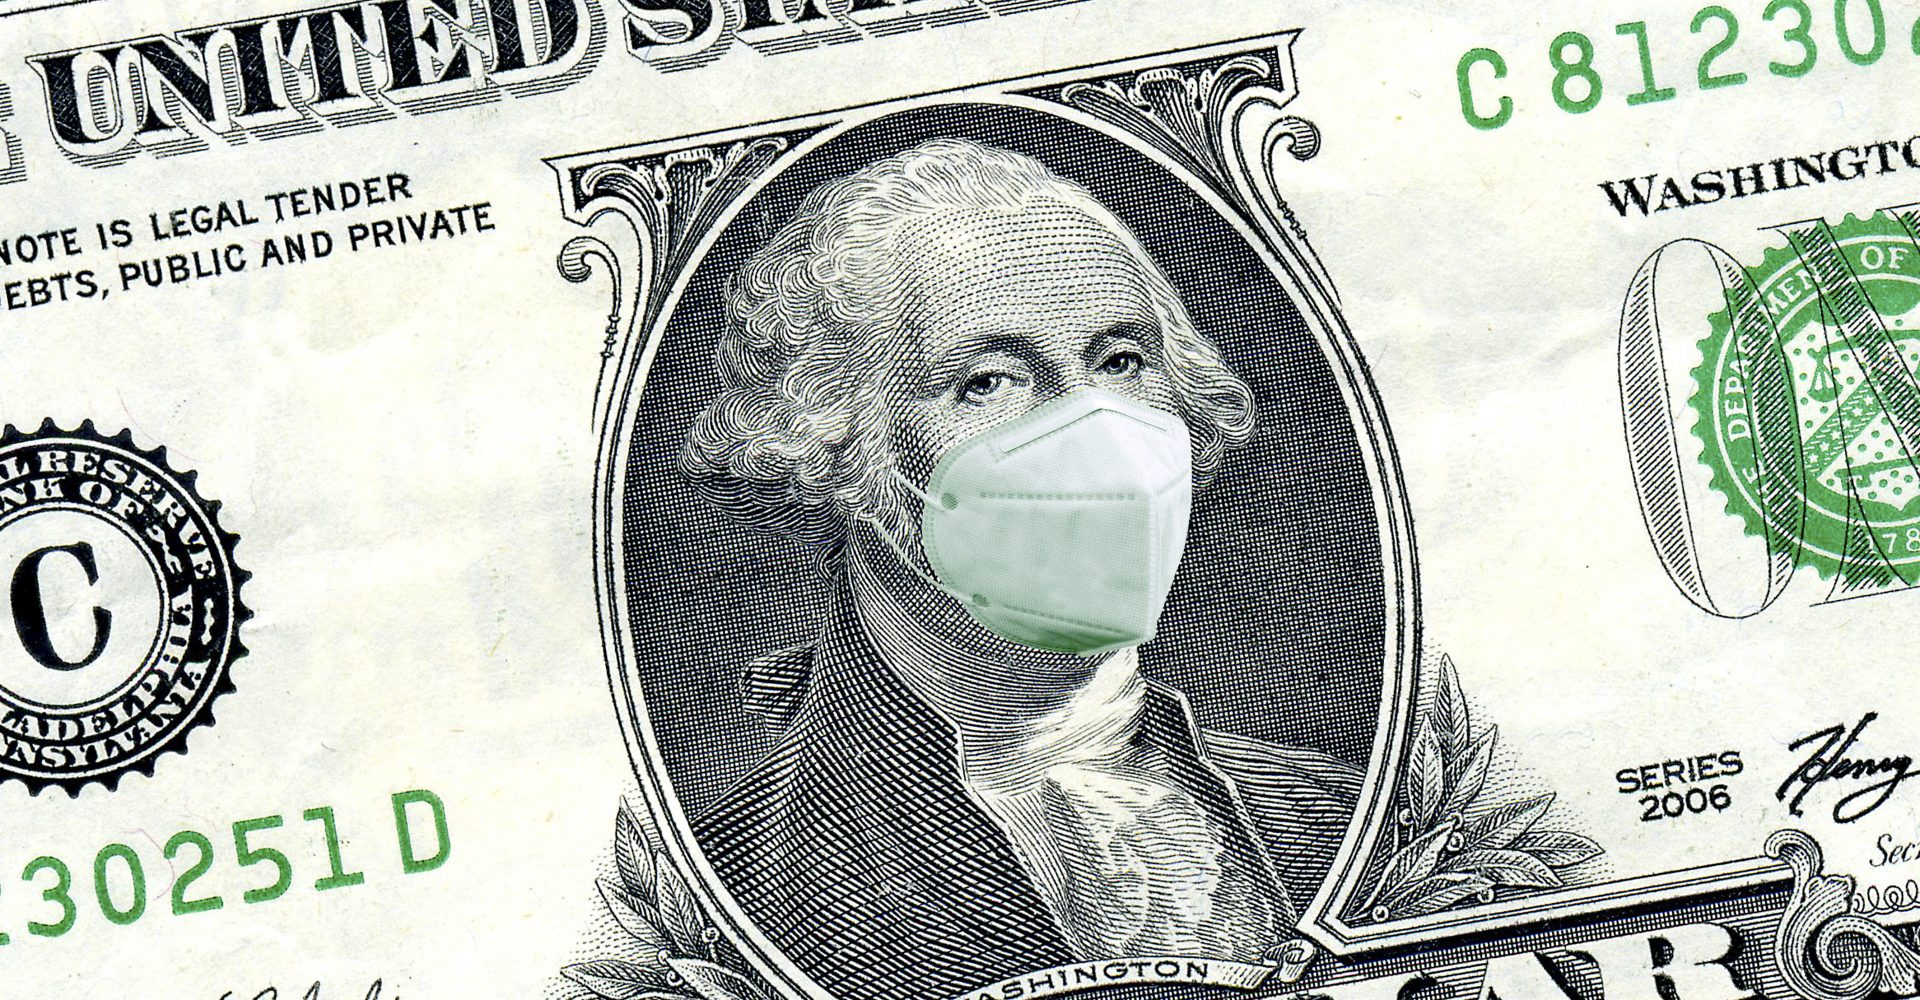 CONSULTING CENTRALE DOLLAR BILL MASKED FROM COVID